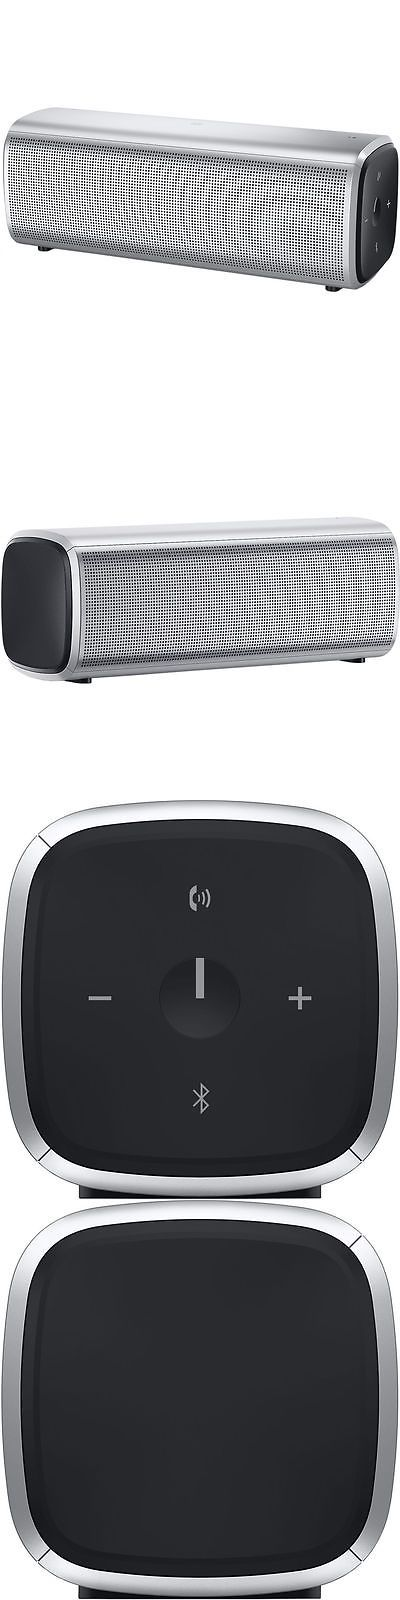 Audio Docks and Mini Speakers: Dell Ad211 Bluetooth Portable Speaker System -New- -> BUY IT NOW ONLY: $36.0 on eBay!